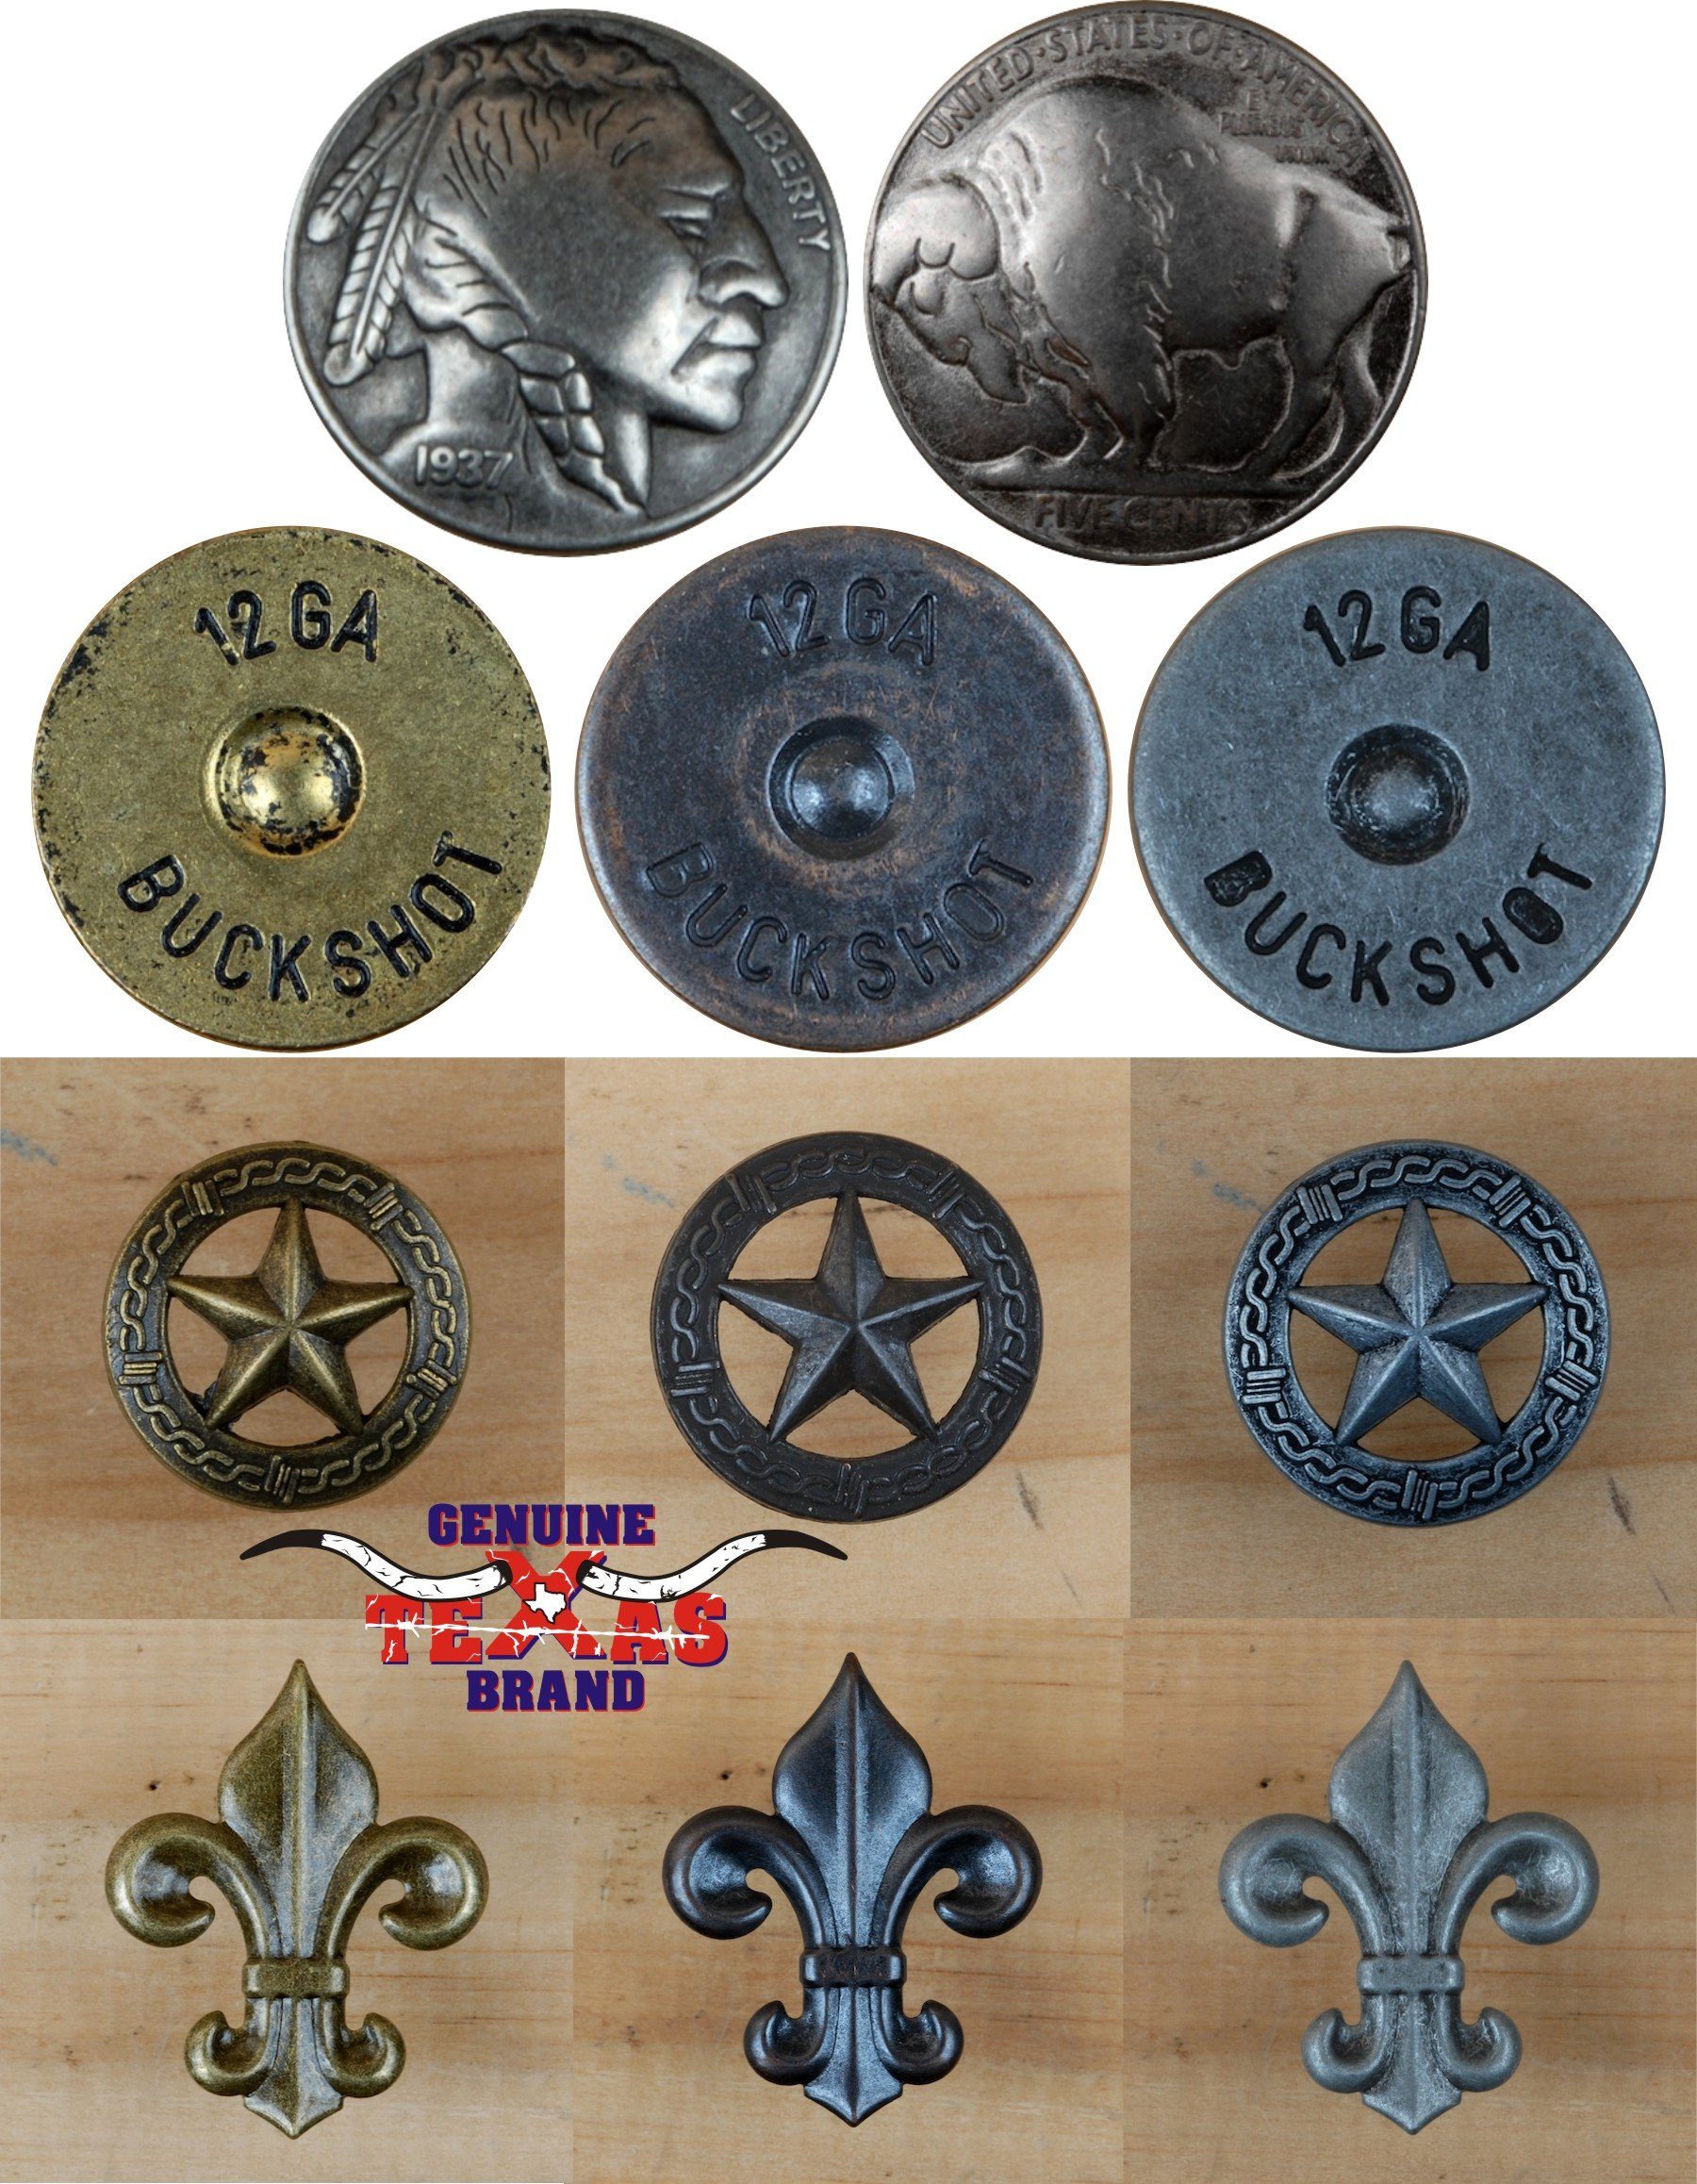 25 Buffalo Nickel Upholstery Framing Tacks, Decorative Nails 7/8 Dia 1/2'' Long Concho by Genuine Texas Brand (Image #4)